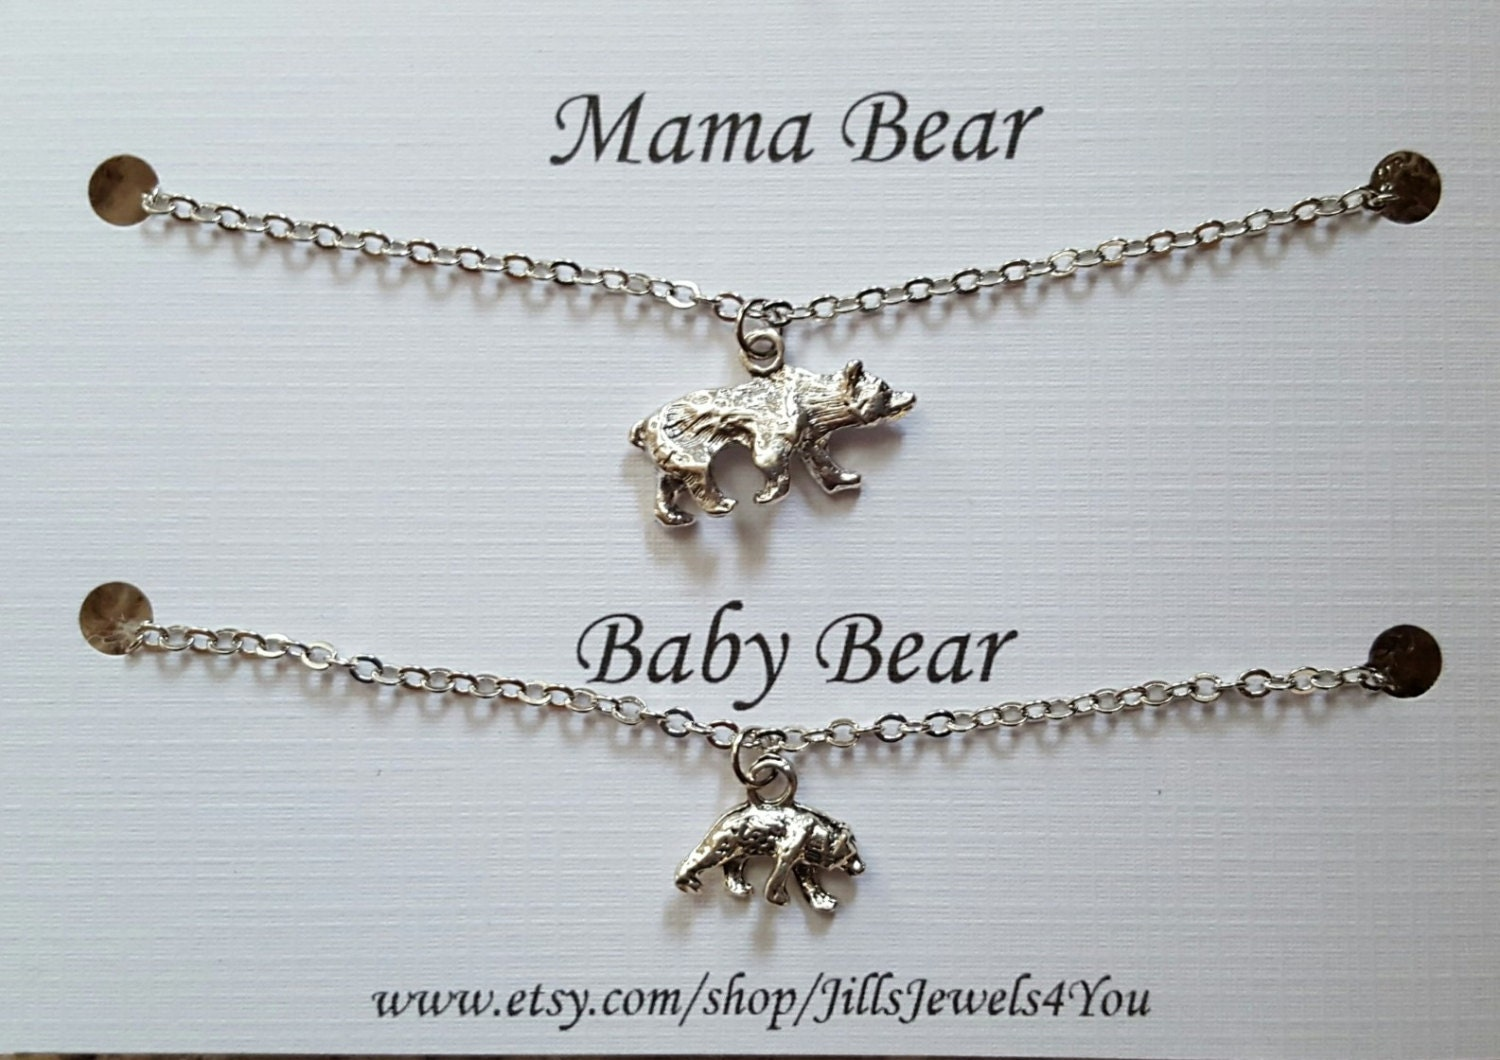 coin necklace shop jewels bear minimalist mama joysoul